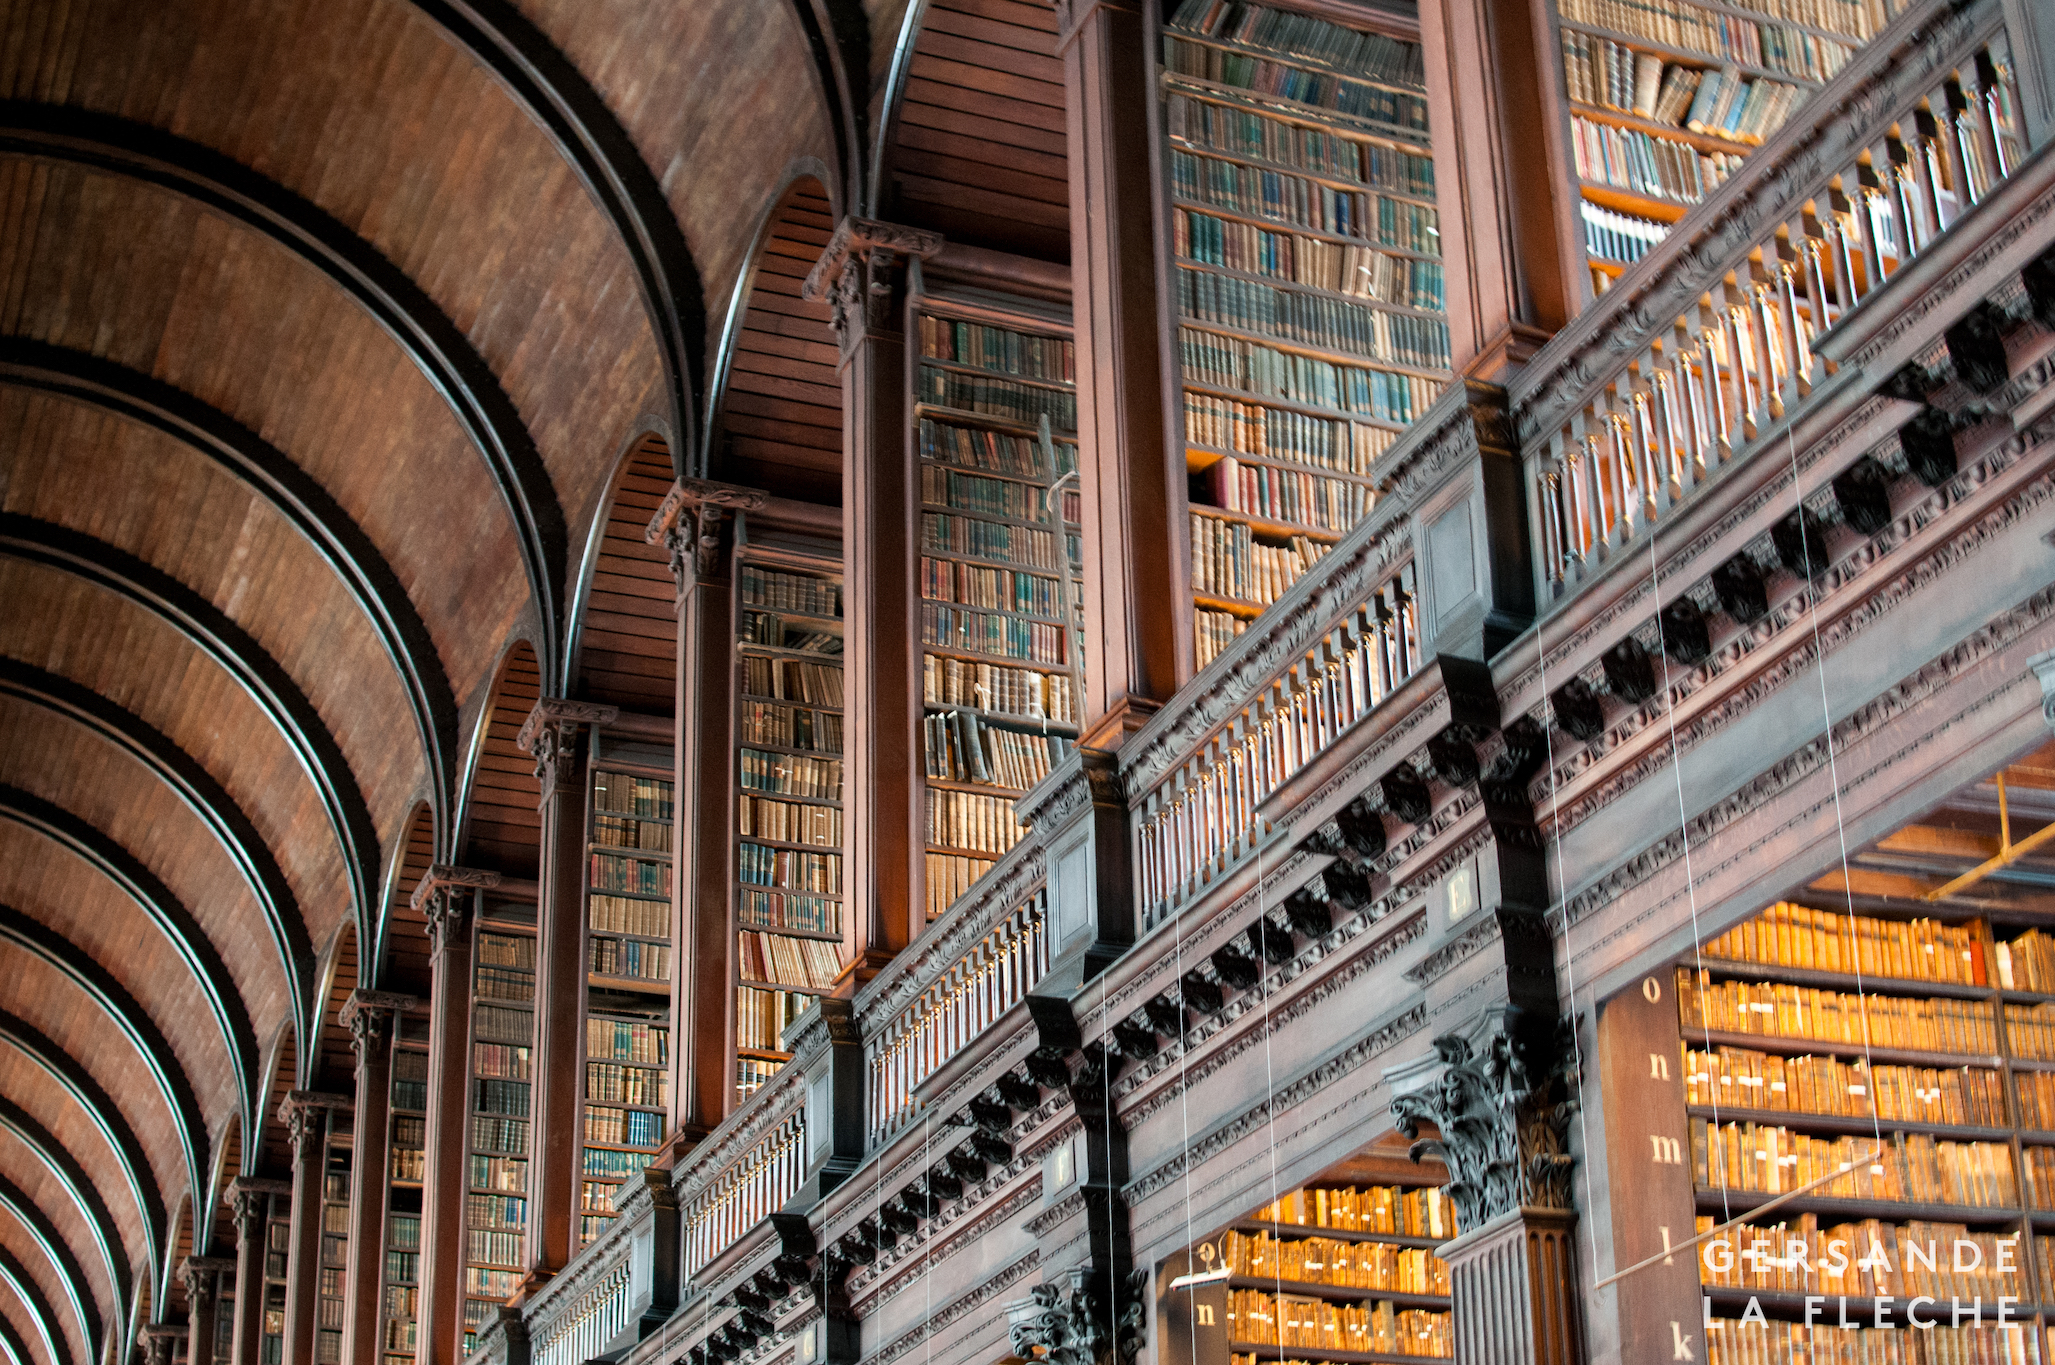 Photo by the author. A photo of the Long Room in the old library of Trinity College Dublin.